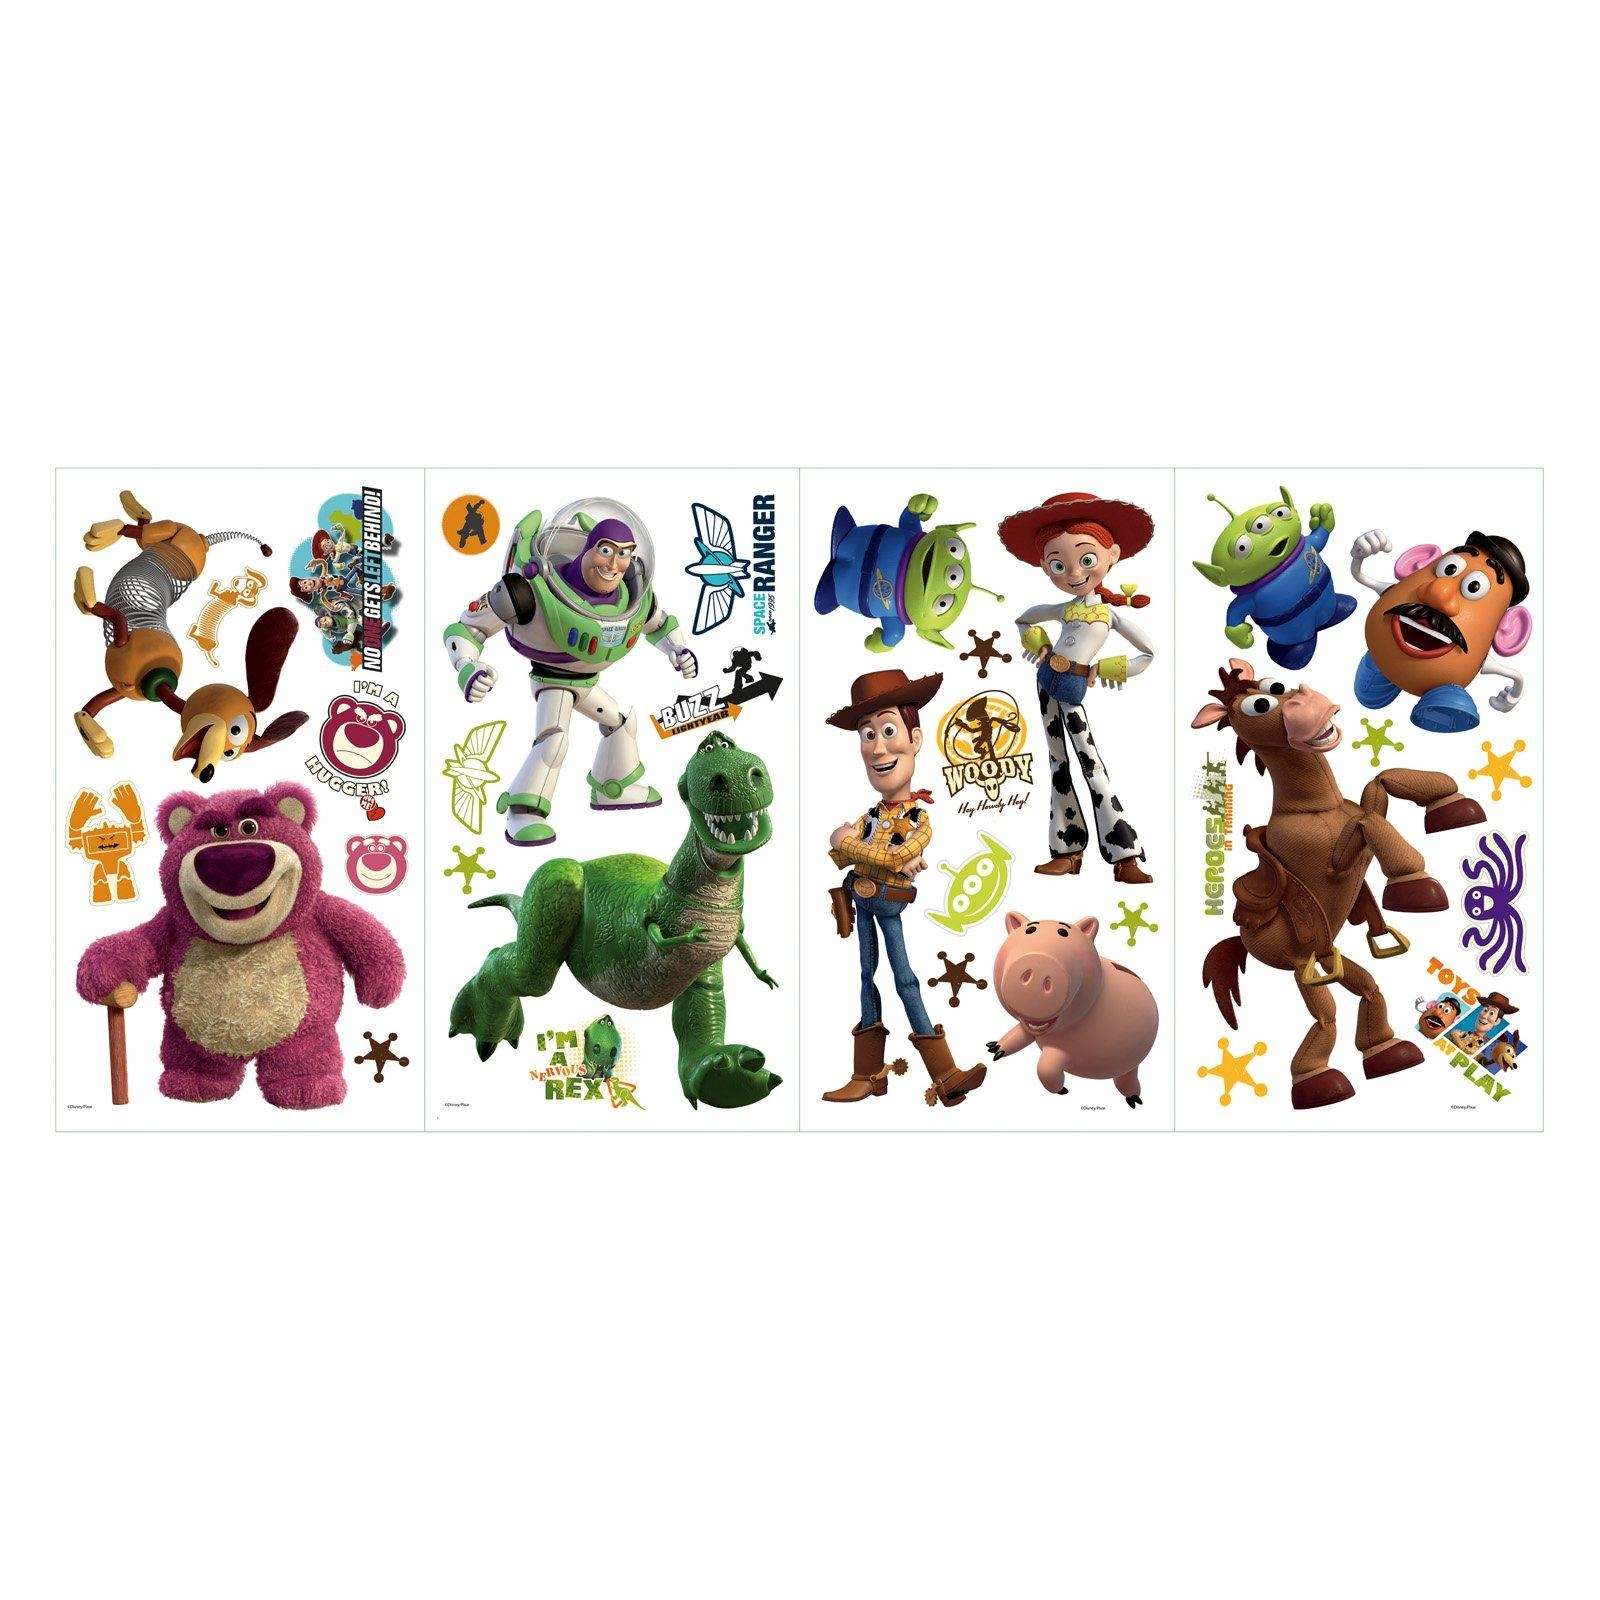 Roommates Disney Pixar Toy Story 3 Peel & Stick Wall Decals – Glow Throughout Toy Story Wall Stickers (Image 14 of 20)